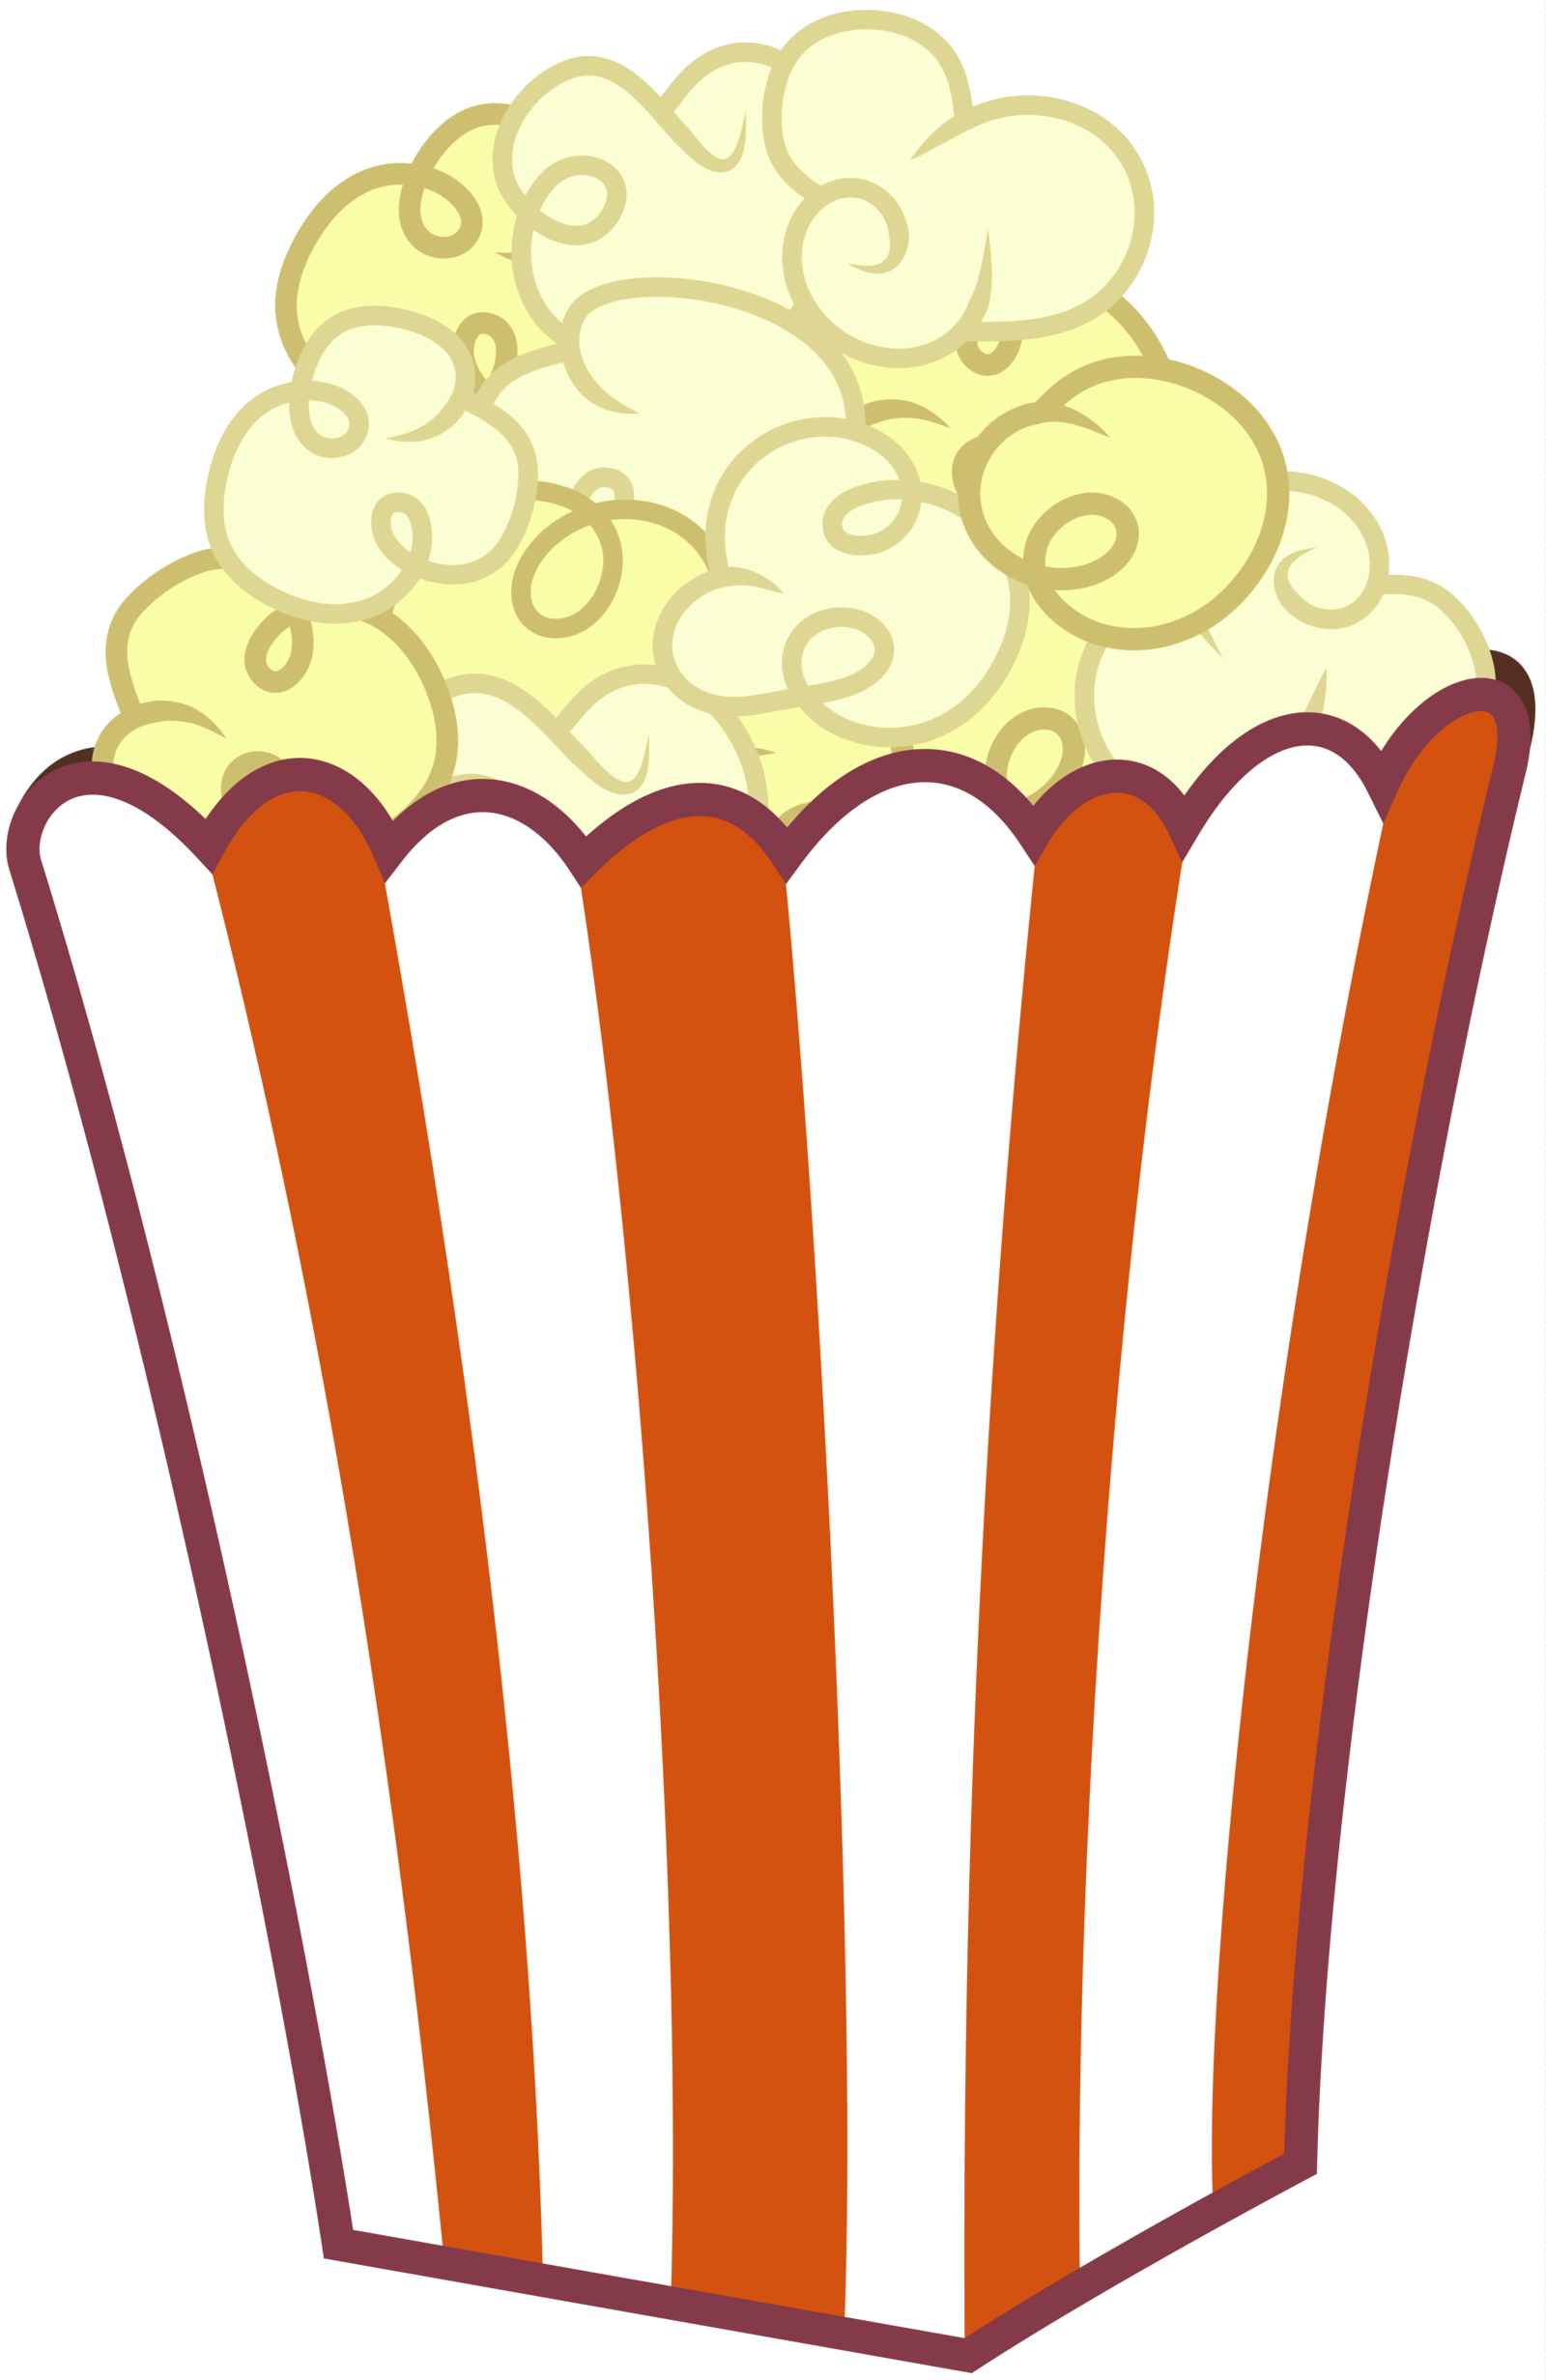 Popcorn kernel clipart transparent background clipartfest 4